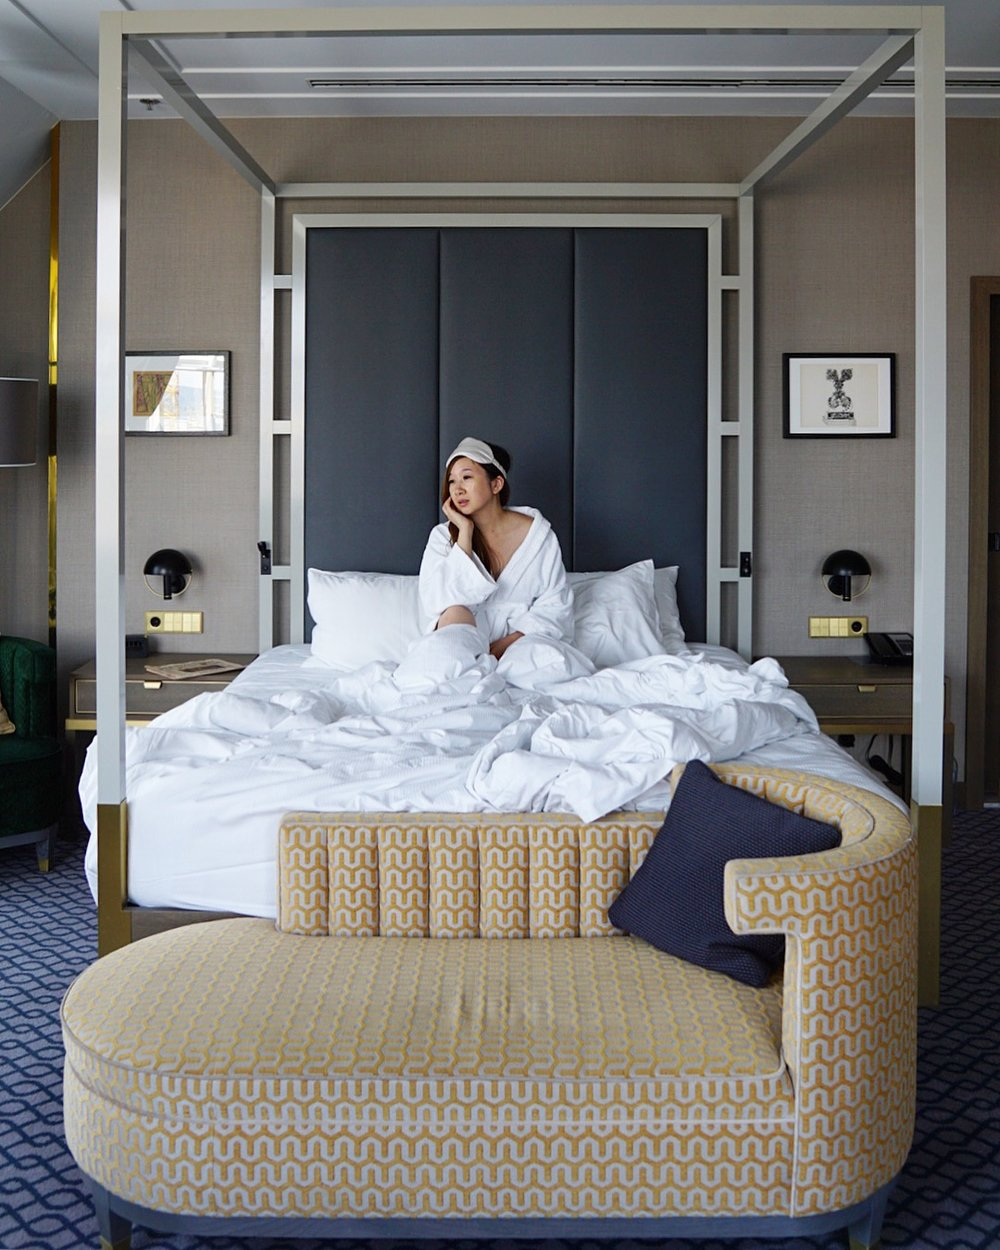 Enjoying the comfort of the bed in Hilton Vienna Plaza's Junior corner suite.